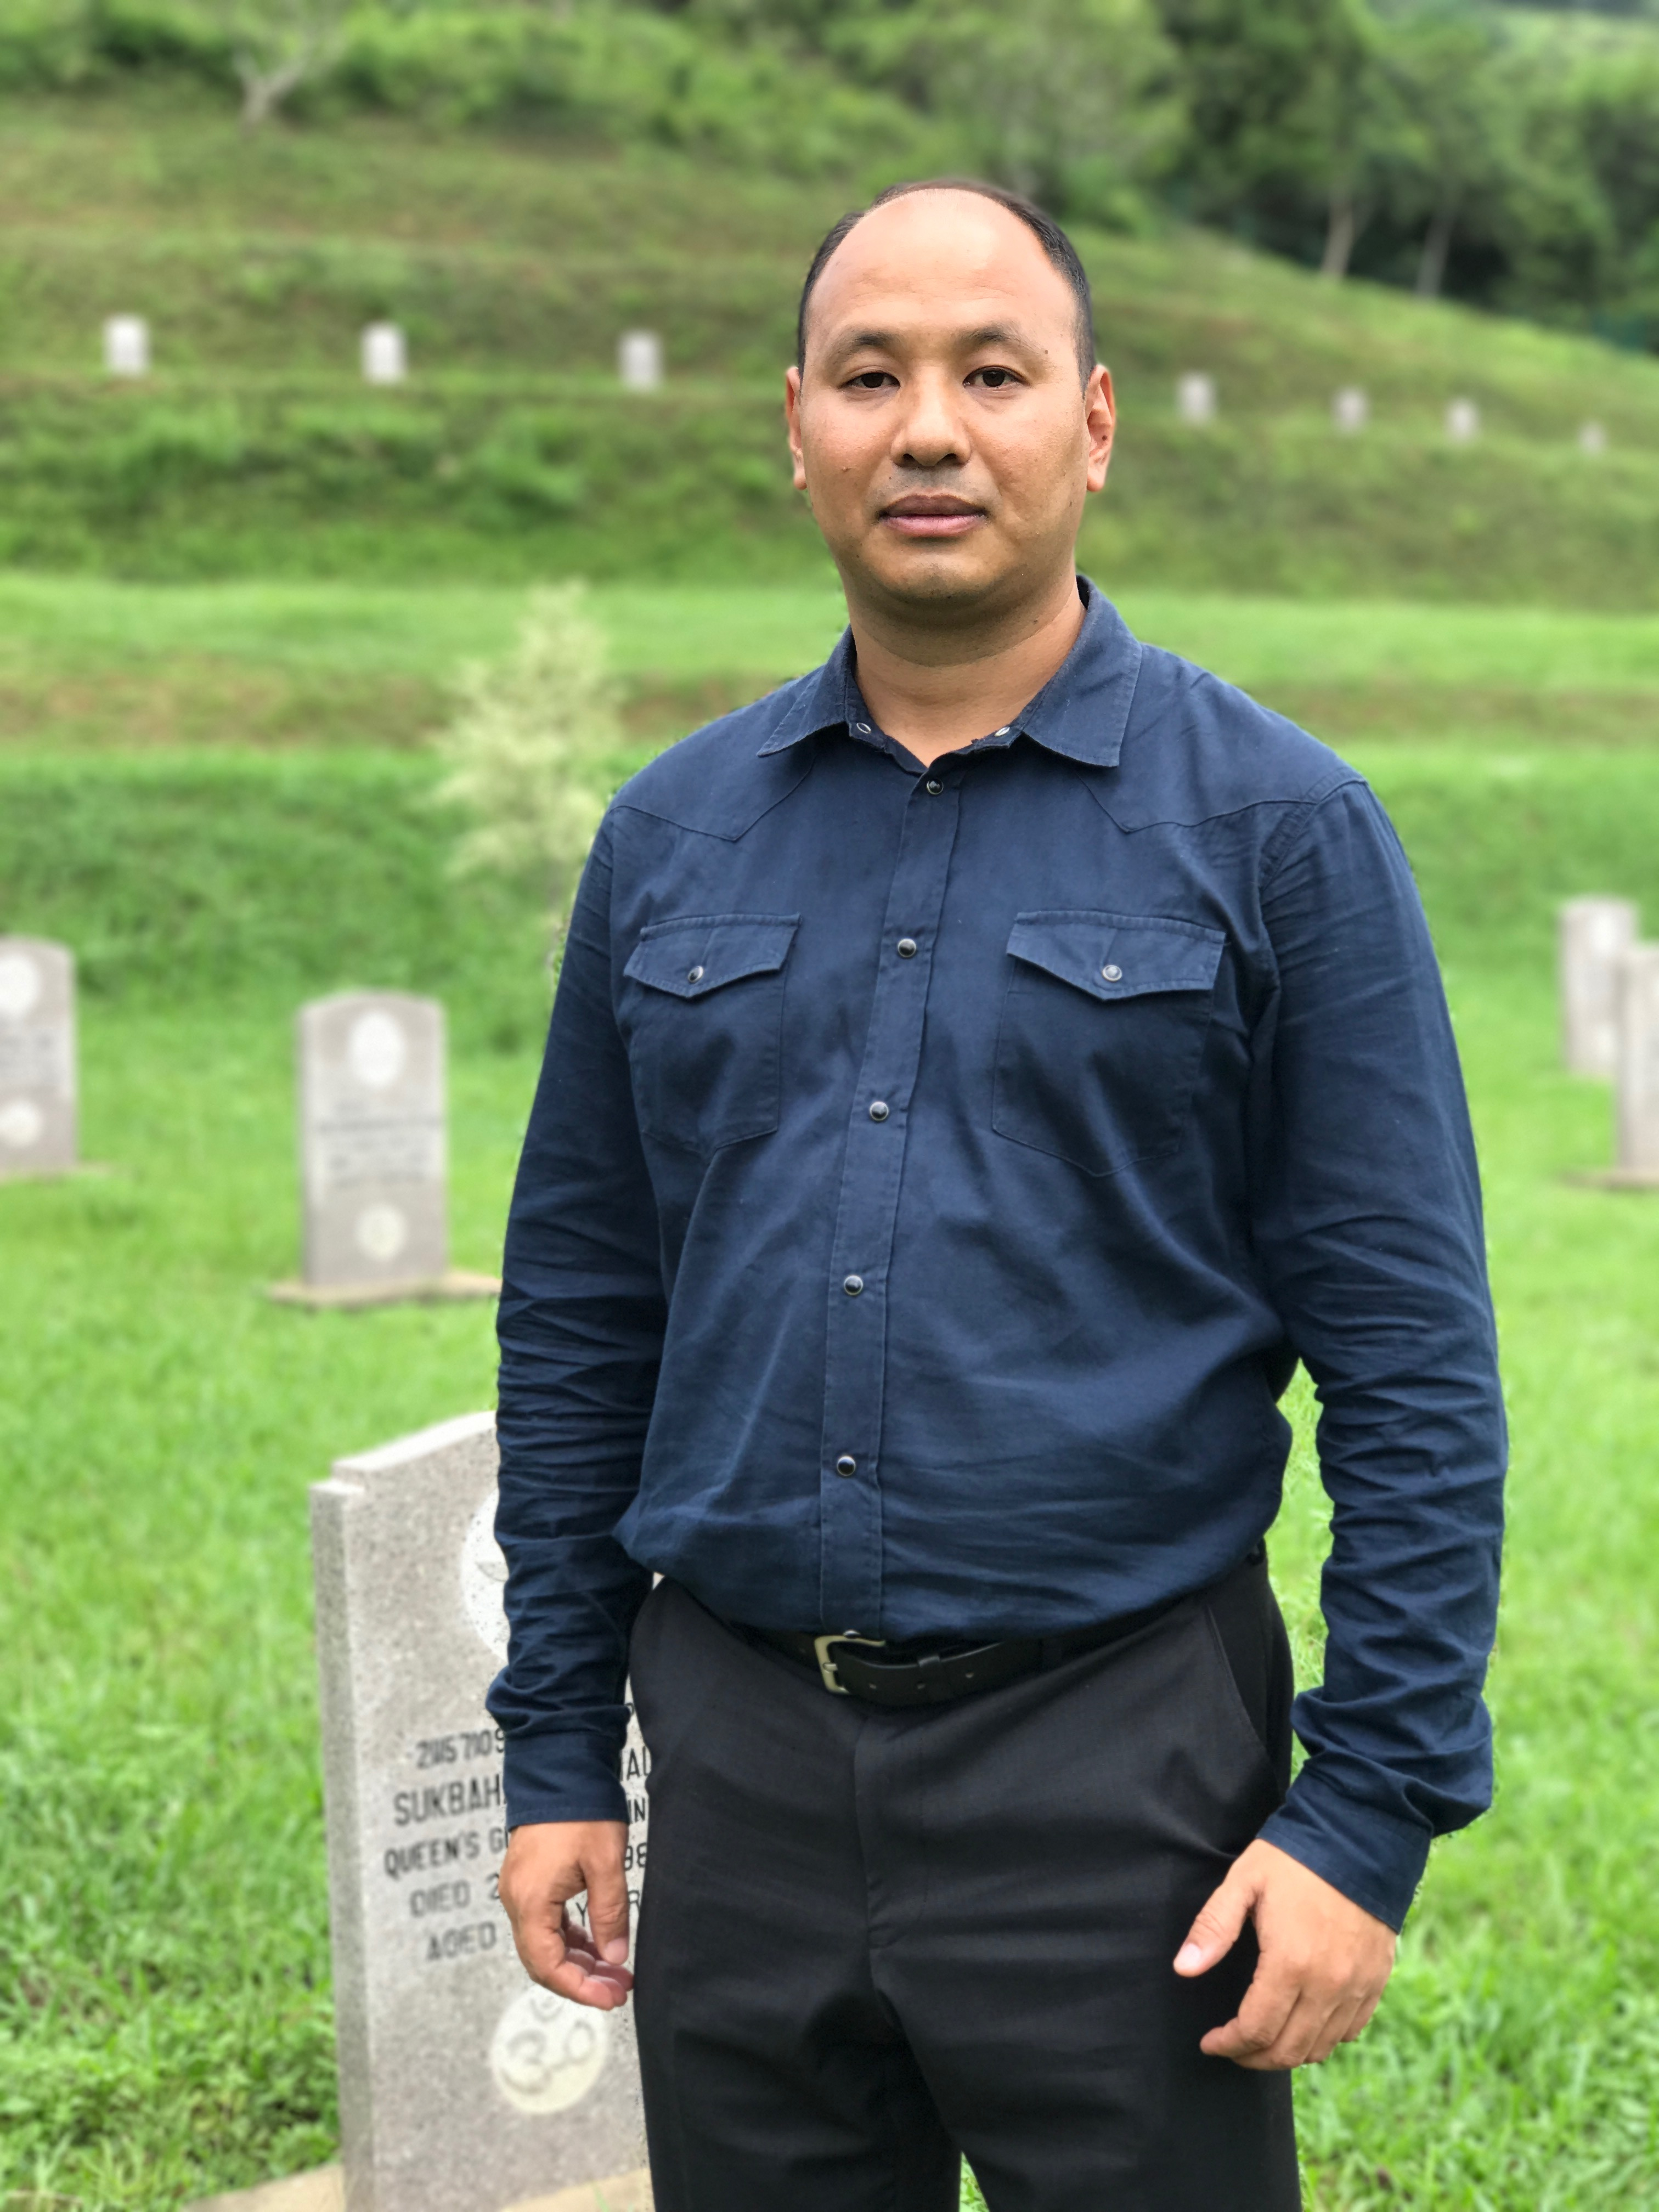 "Amod Rai, age 37, a teacher and activist for the Gurkha community, pictured at the cemetery for Gurkha servicemen in San Tin, Hong Kong, on June 22, 2017. ""The Nepalese community is a part of Hong Kong history and 80% of the community consists of Gurkha descendents. We started coming here in 1948, after World War 2, and we made the utmost contribution in making Hong Kong a safe place. Gurkhas cleared Hong Kong of wartime mines. They helped to build our infrastructure — bridges and roads and water supplies. They reforested the hillsides and they helped when disasters like typhoons struck. They maintained peace between the PLA and the British on the border.  None of this is in the Hong Kong school curriculum — our identity, dignity and culture are not included. People are calling for democracy. Well, diversity is a core element of that. If we want Hong Kong to be differentiated from China then we have to appreciate our diversity."""